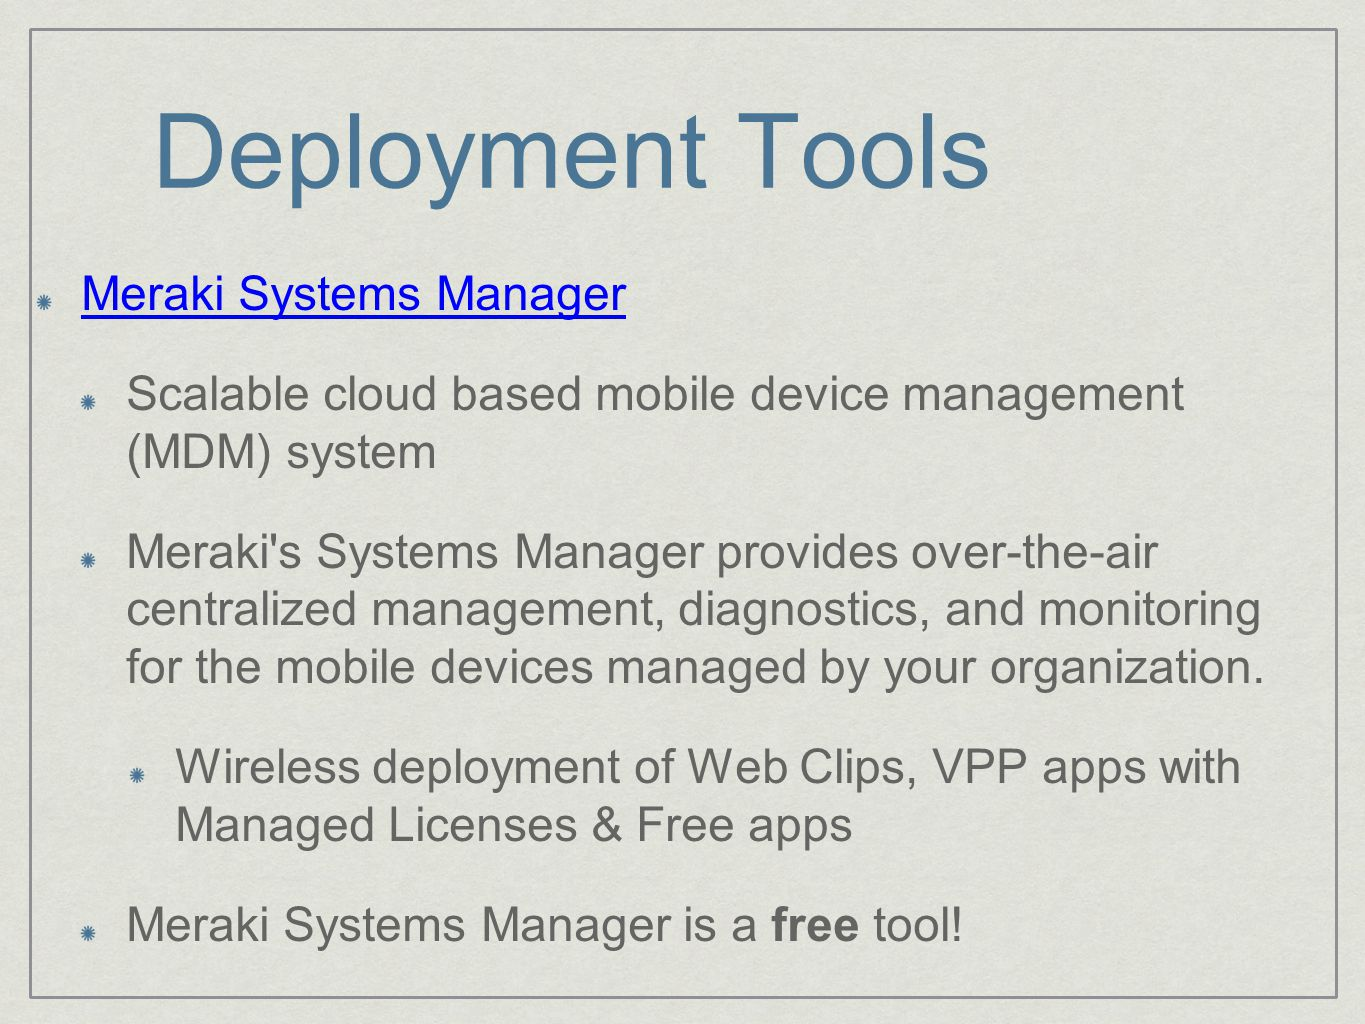 Deployment Tools Meraki Systems Manager Scalable cloud based mobile device management (MDM) system Meraki s Systems Manager provides over-the-air centralized management, diagnostics, and monitoring for the mobile devices managed by your organization.